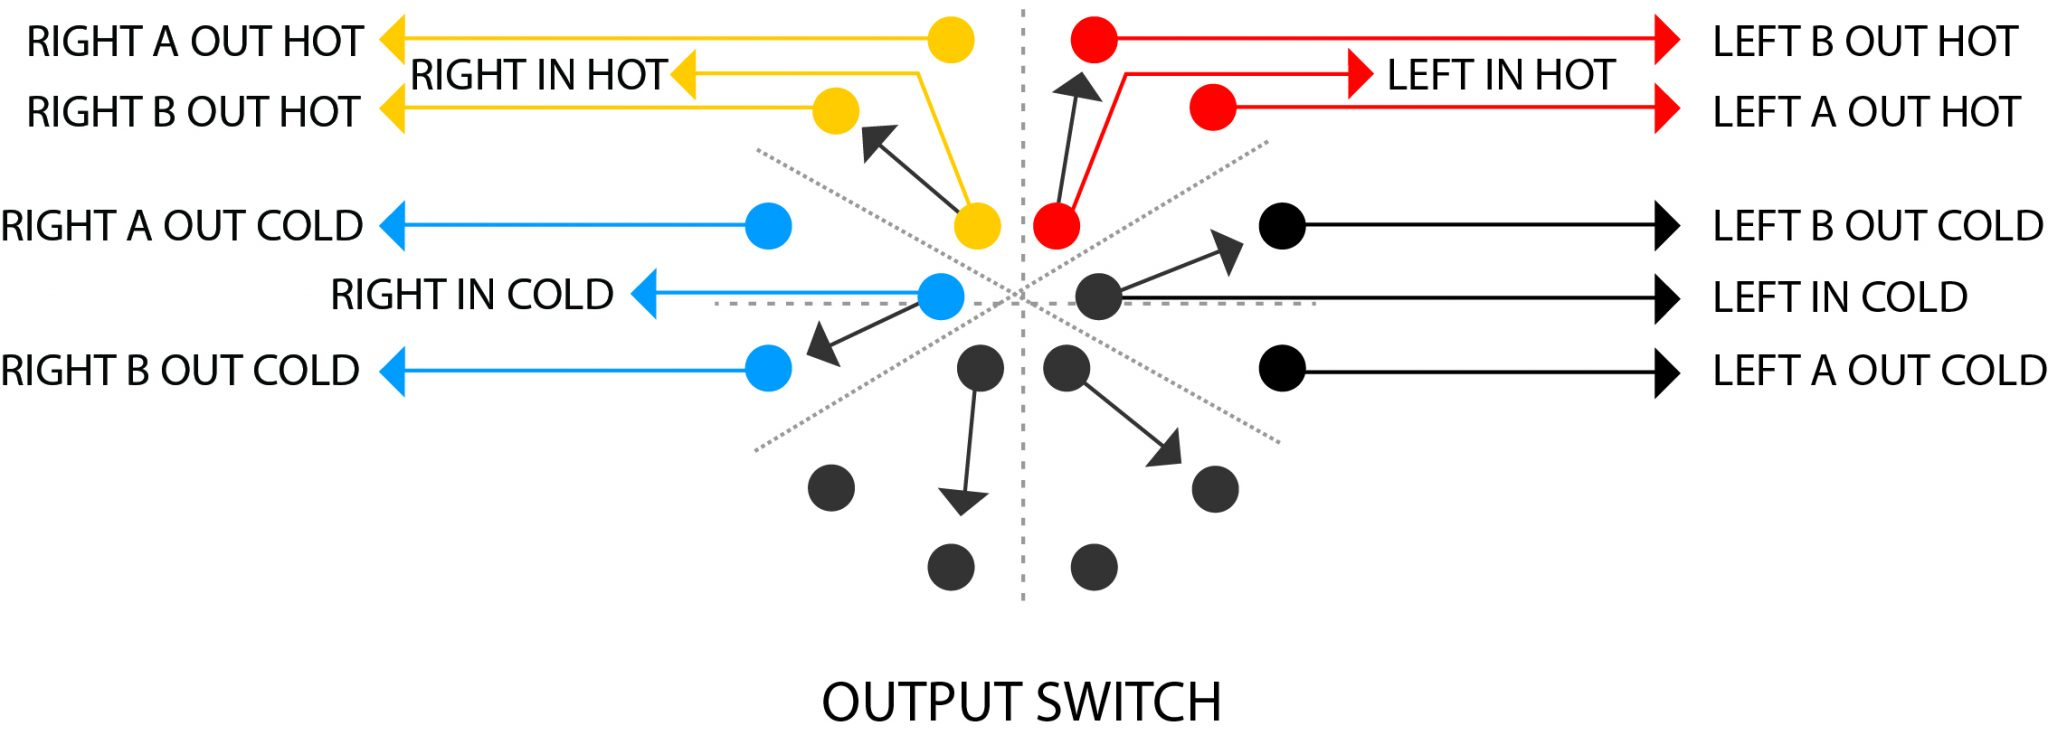 output switch